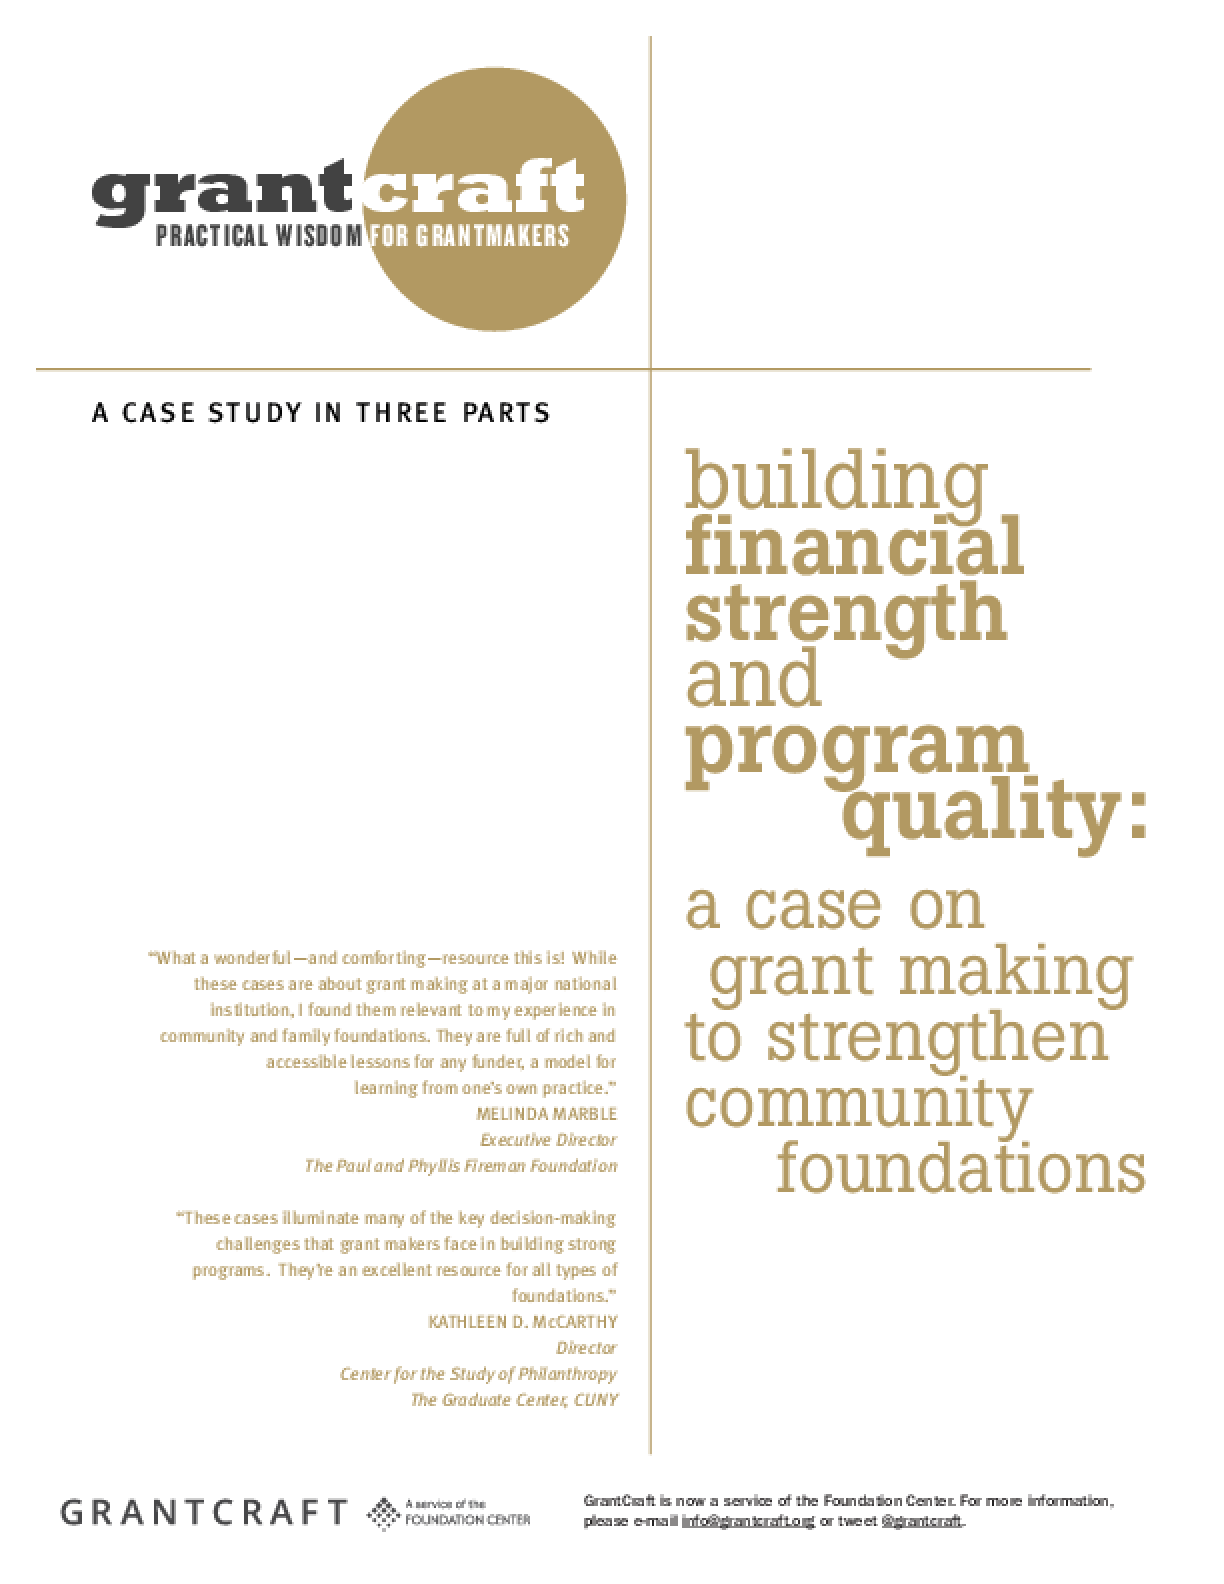 Building Financial Strength and Program Quality: A Case On Grantmaking to Strengthen Community Foundations